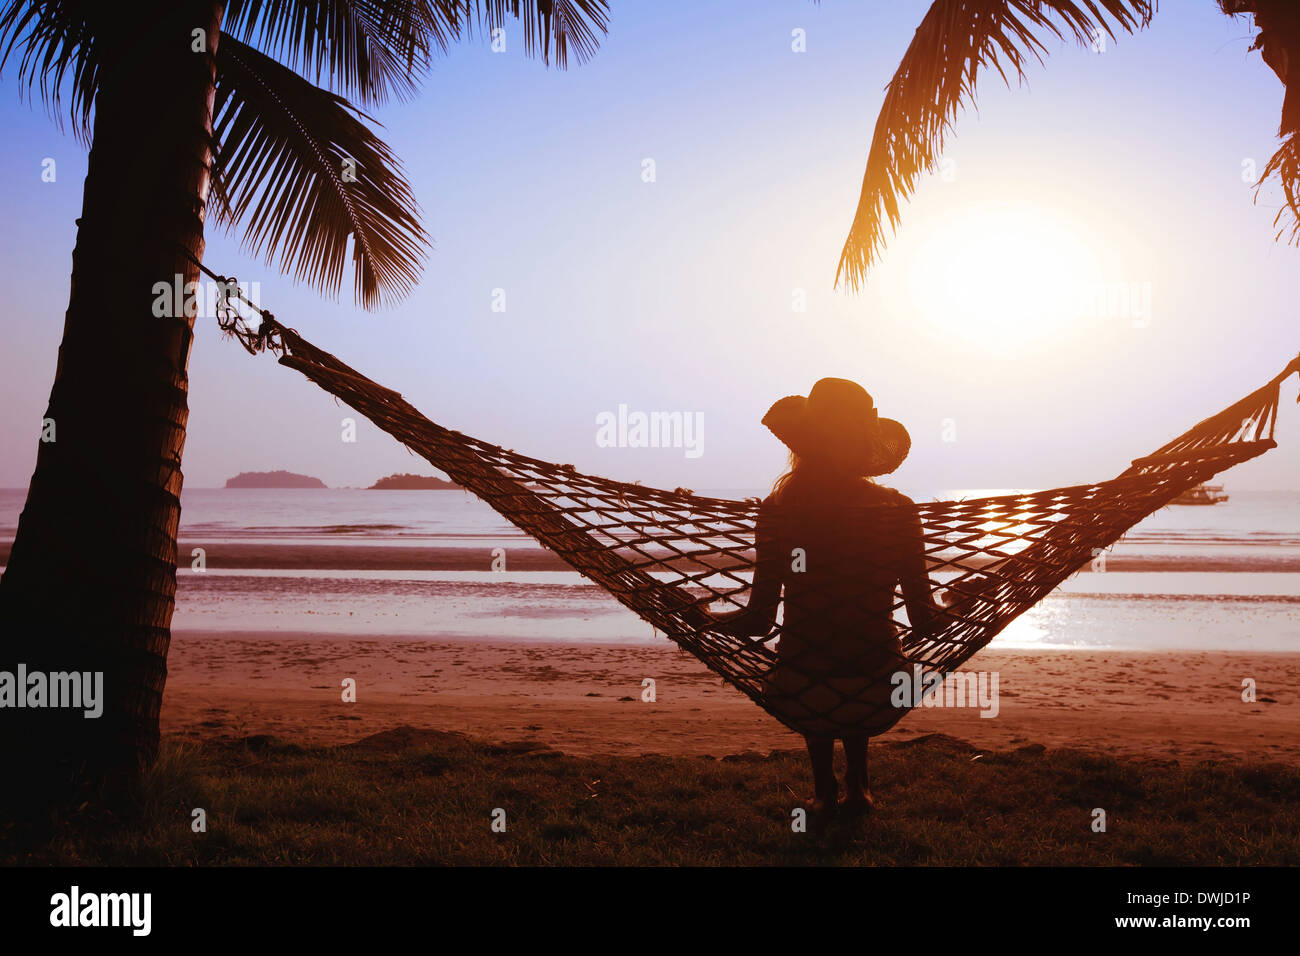 relaxing in hammock at sunset on the paradise beach - Stock Image